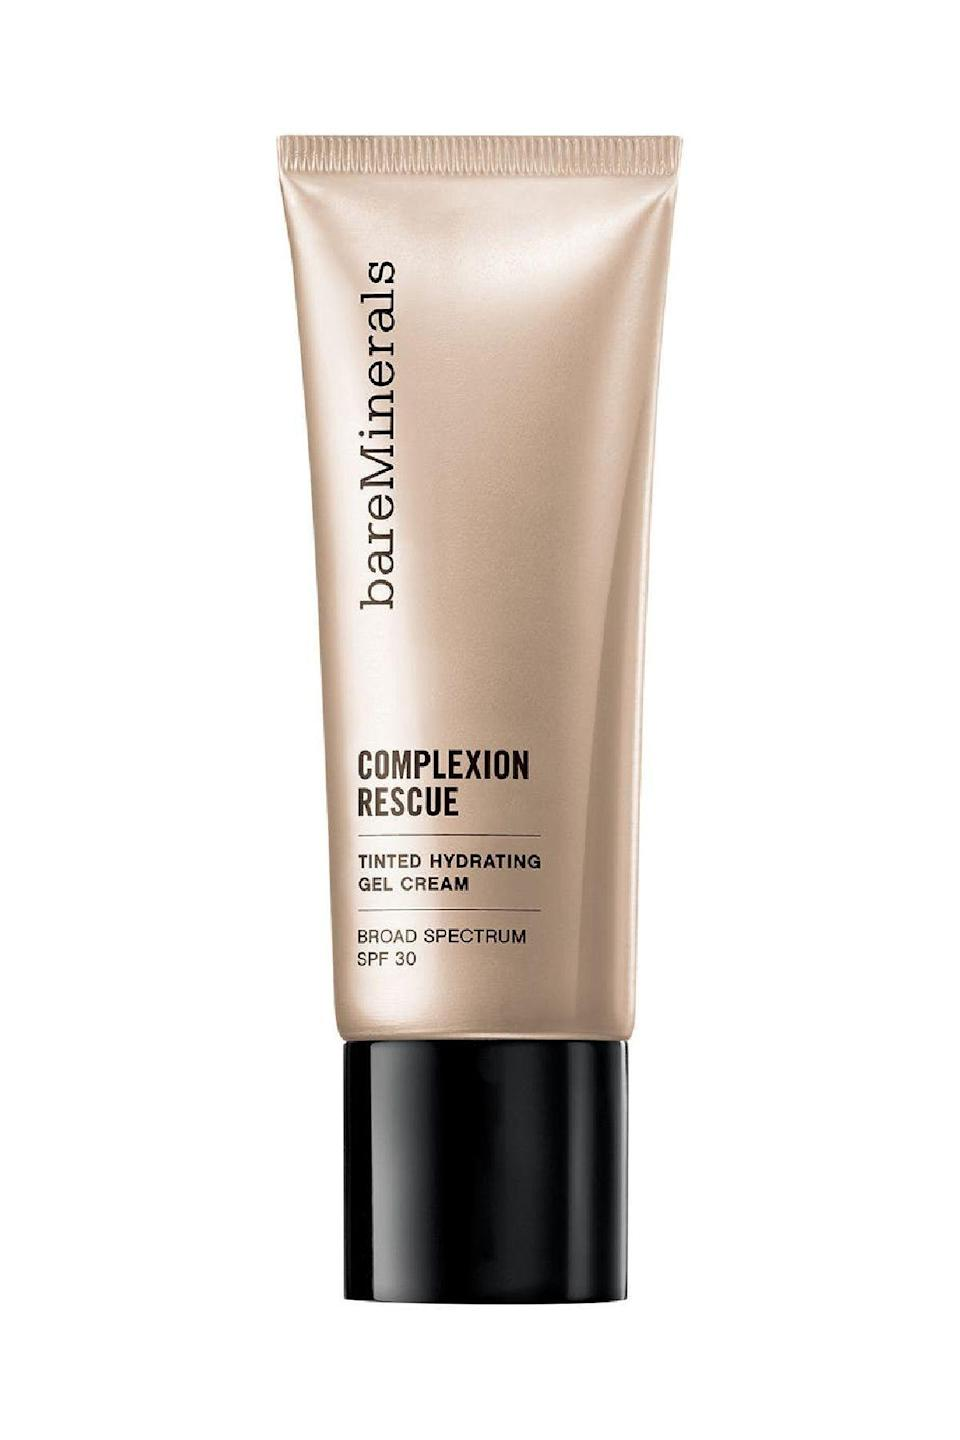 """<p><strong>bareMinerals</strong></p><p>sephora.com</p><p><strong>$33.00</strong></p><p><a href=""""https://go.redirectingat.com?id=74968X1596630&url=https%3A%2F%2Fwww.sephora.com%2Fproduct%2Fcomplexion-rescue-tinted-hydrating-gel-cream-P393356&sref=https%3A%2F%2Fwww.marieclaire.com%2Fbeauty%2Fmakeup%2Fg3427%2Fbest-bb-creams%2F"""" rel=""""nofollow noopener"""" target=""""_blank"""" data-ylk=""""slk:SHOP IT"""" class=""""link rapid-noclick-resp"""">SHOP IT </a></p><p>In one simple step, this cream brings on the glow. It has a hydrating gel-based texture that's perfect for dry and dehydrated skin. It also has skin-plumping ingredients, such as squalene and mineral electrolytes, when your face needs a little lift. </p>"""